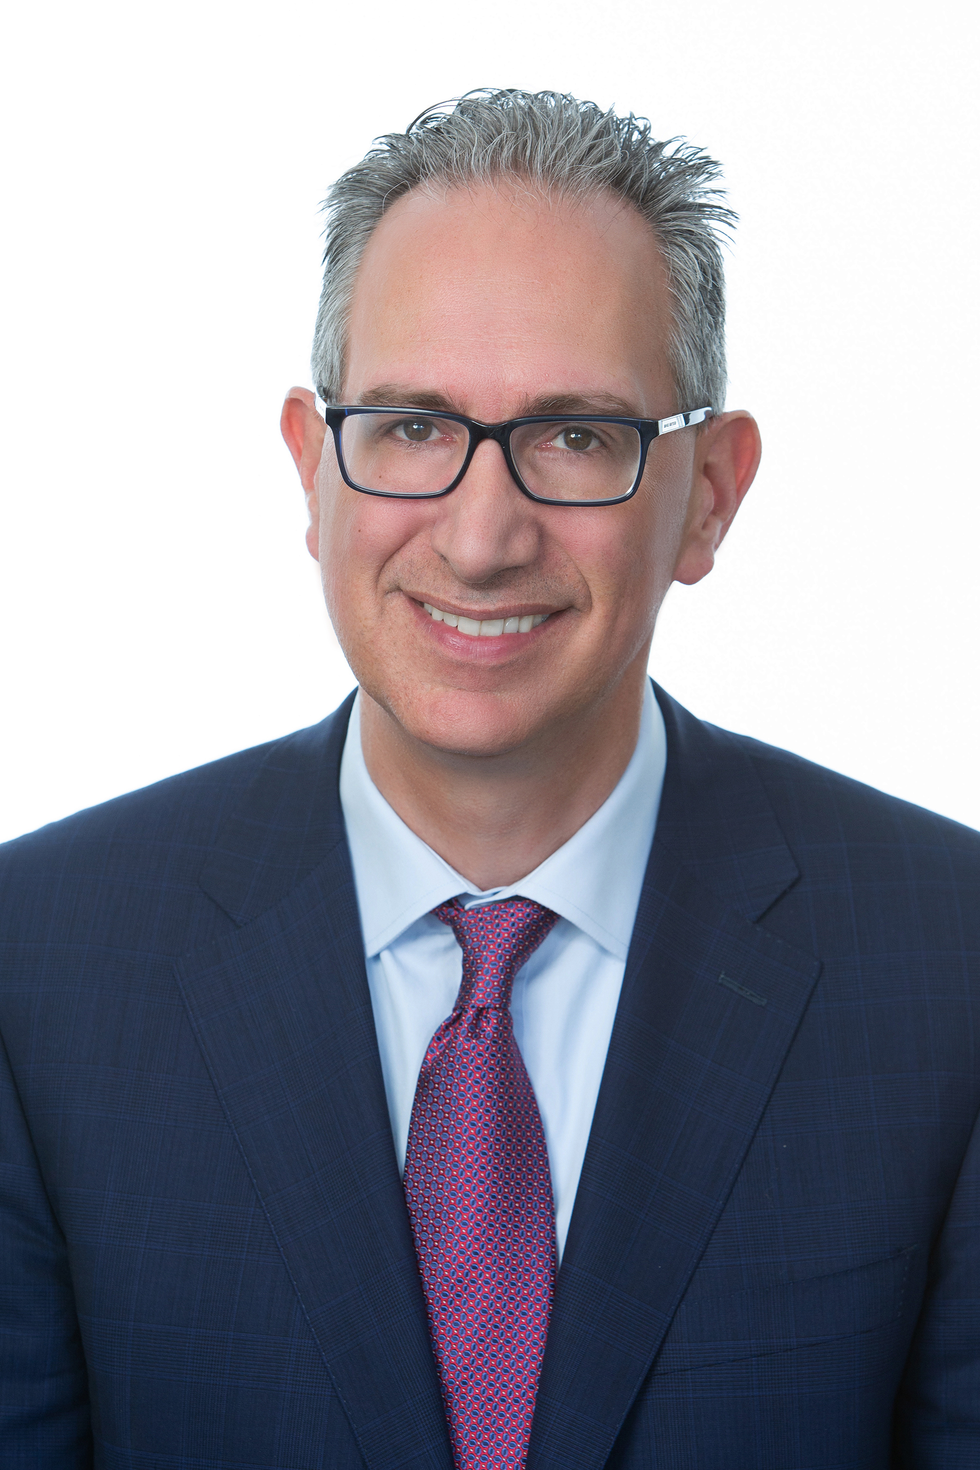 Attorney Eric Kingsley